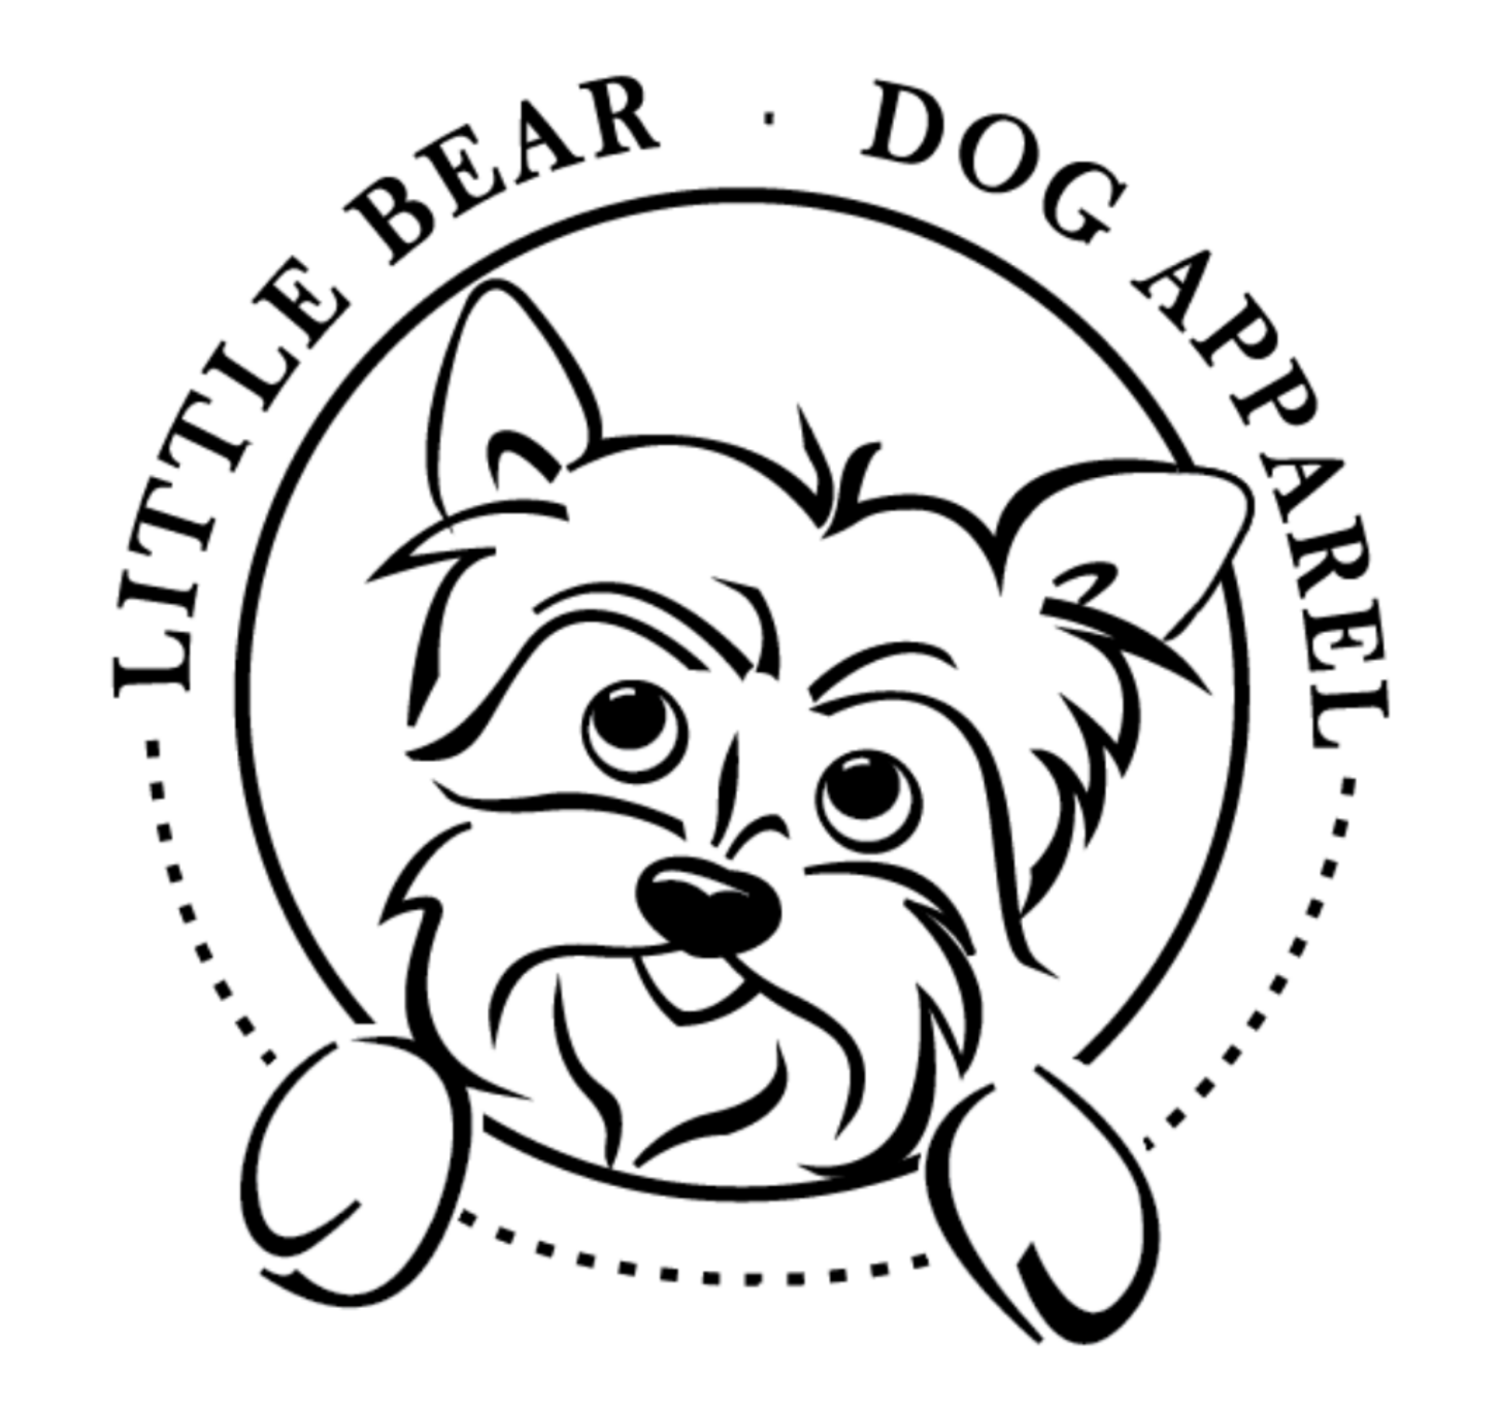 Little Bear Dog Apparel